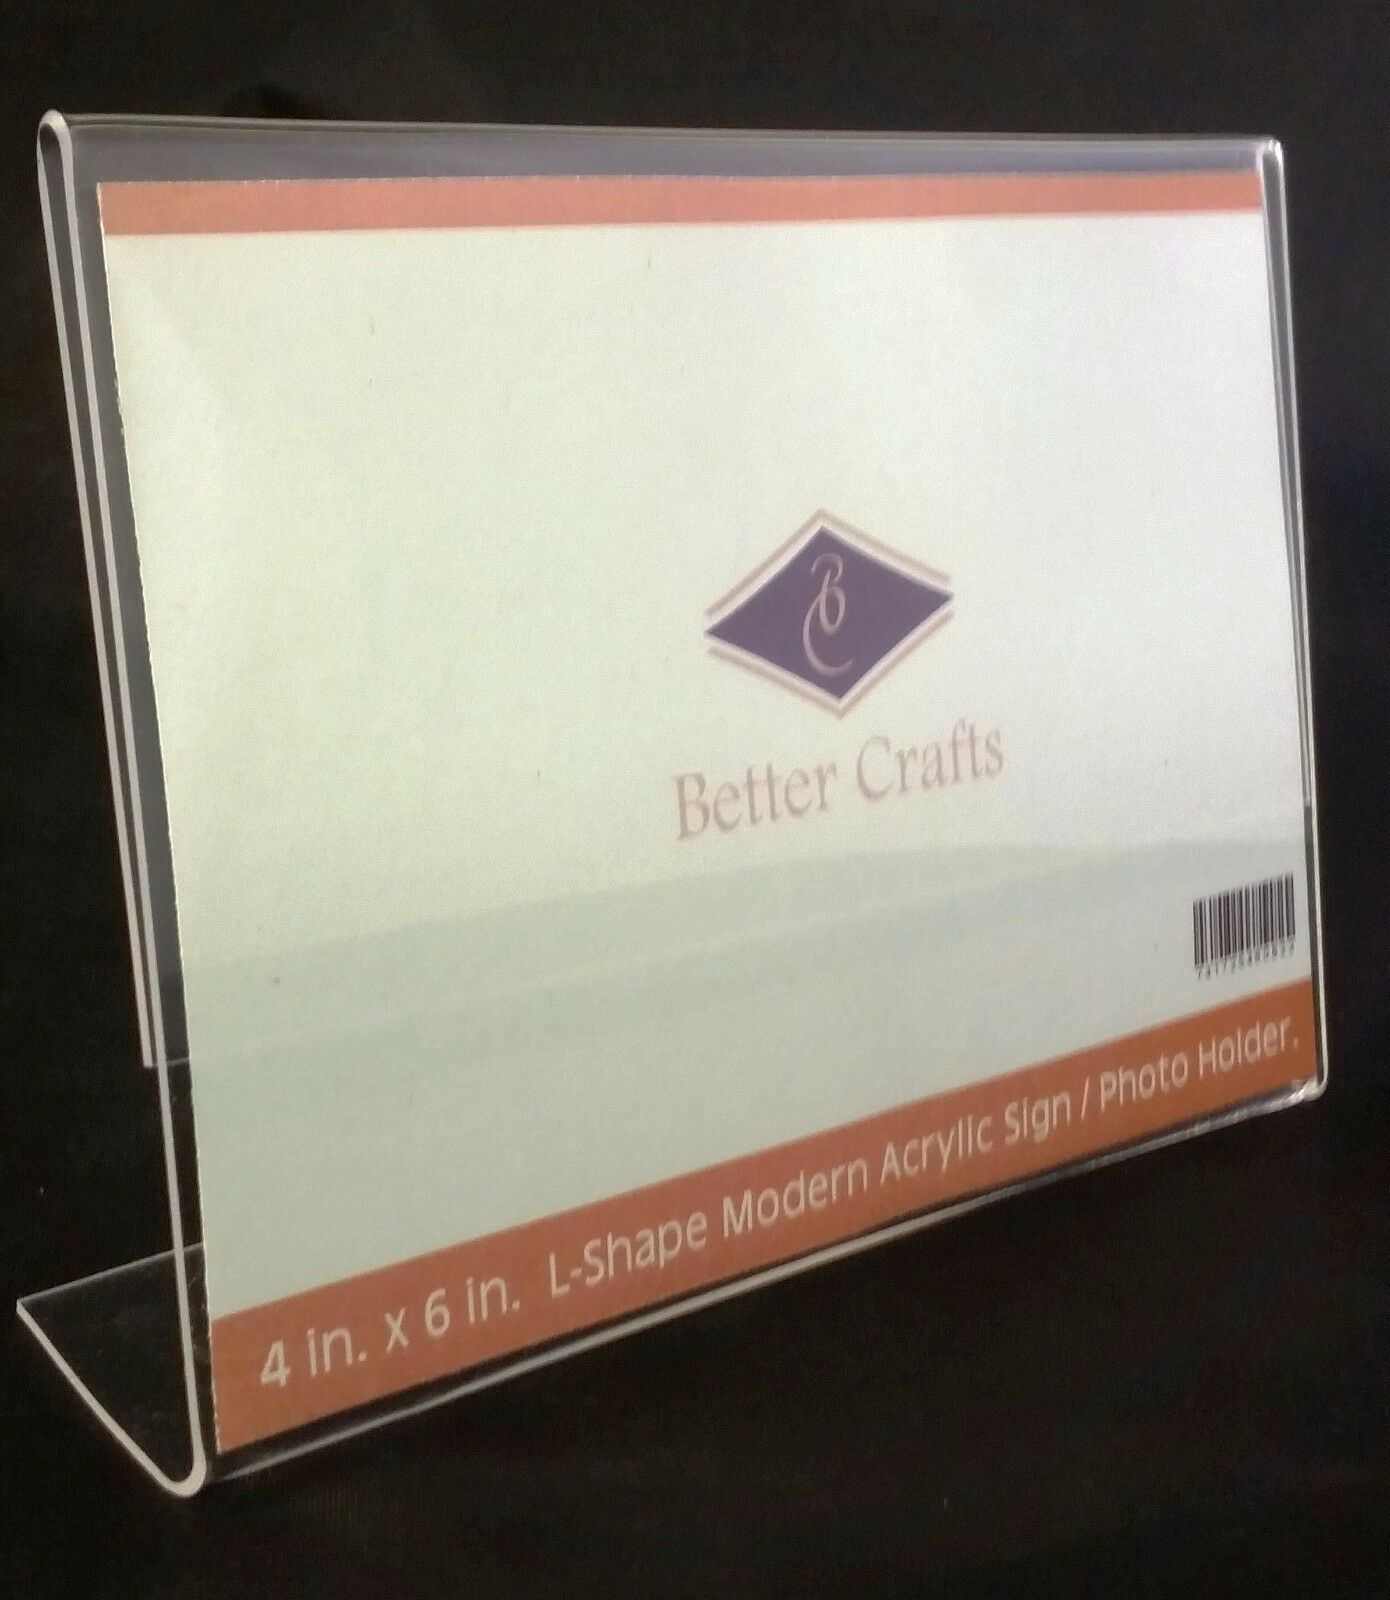 как выглядит Better Crafts Horizontal Slanted L-Shape Acrylic Sign Holder - 2 Pack. фото